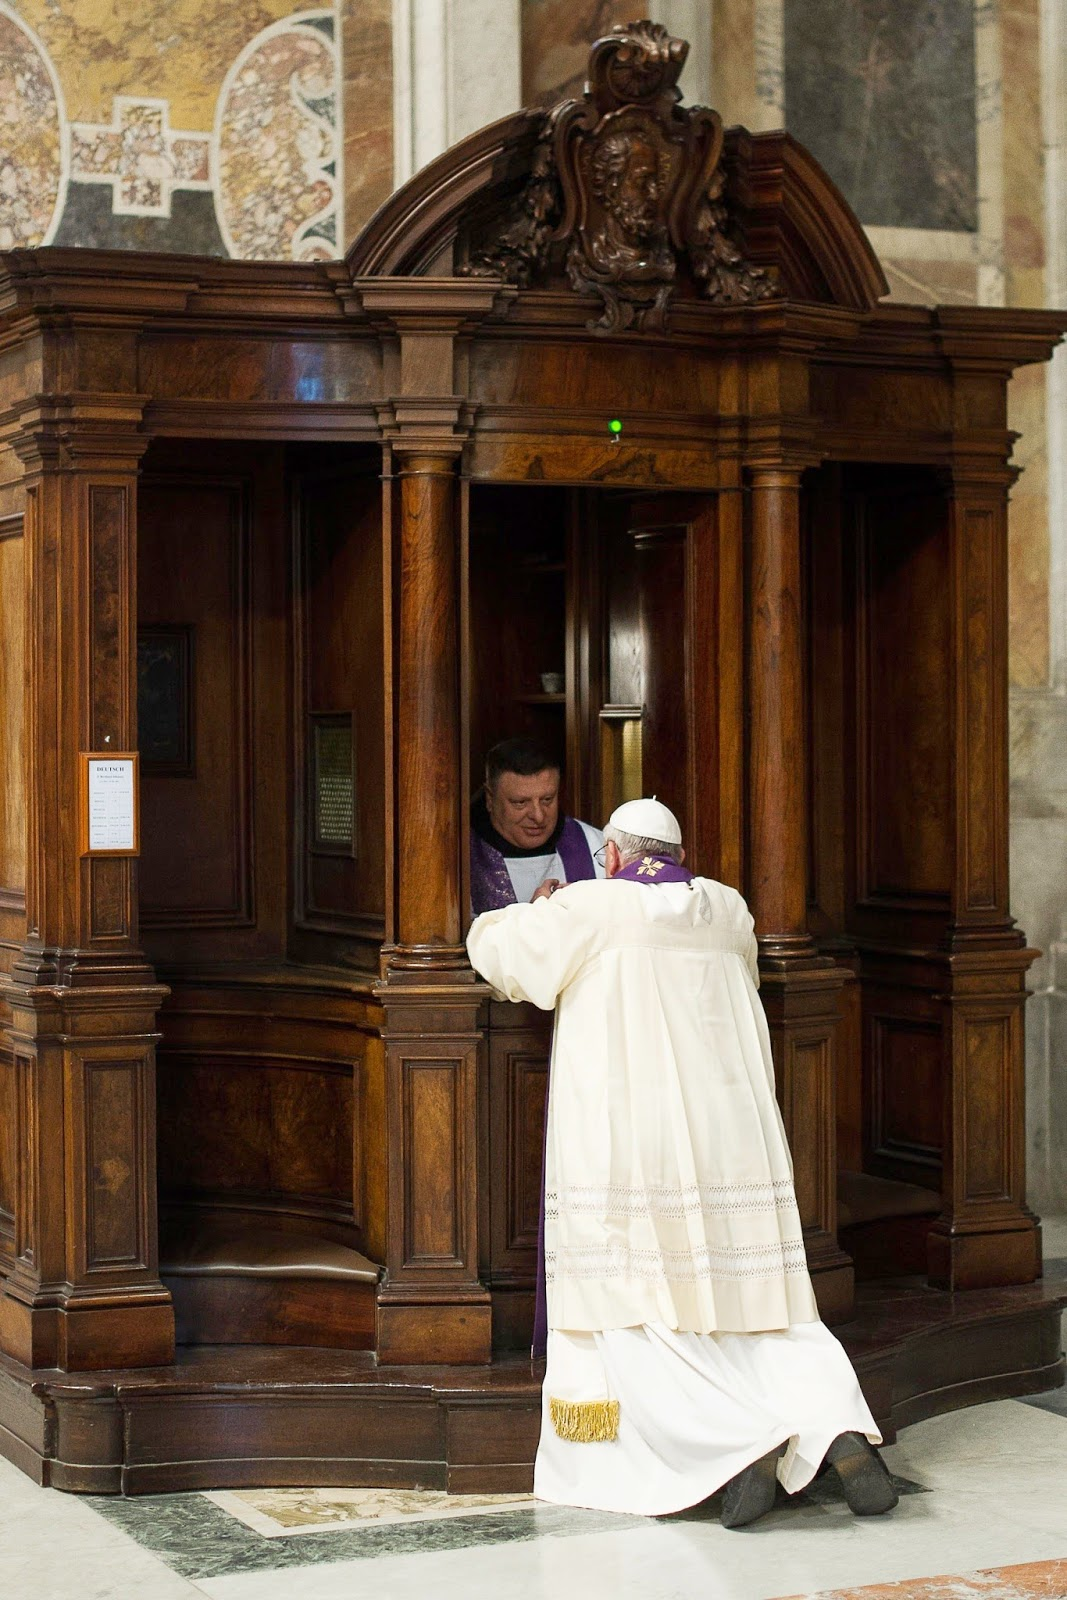 Finding The Catholic Church The Sacrament Of